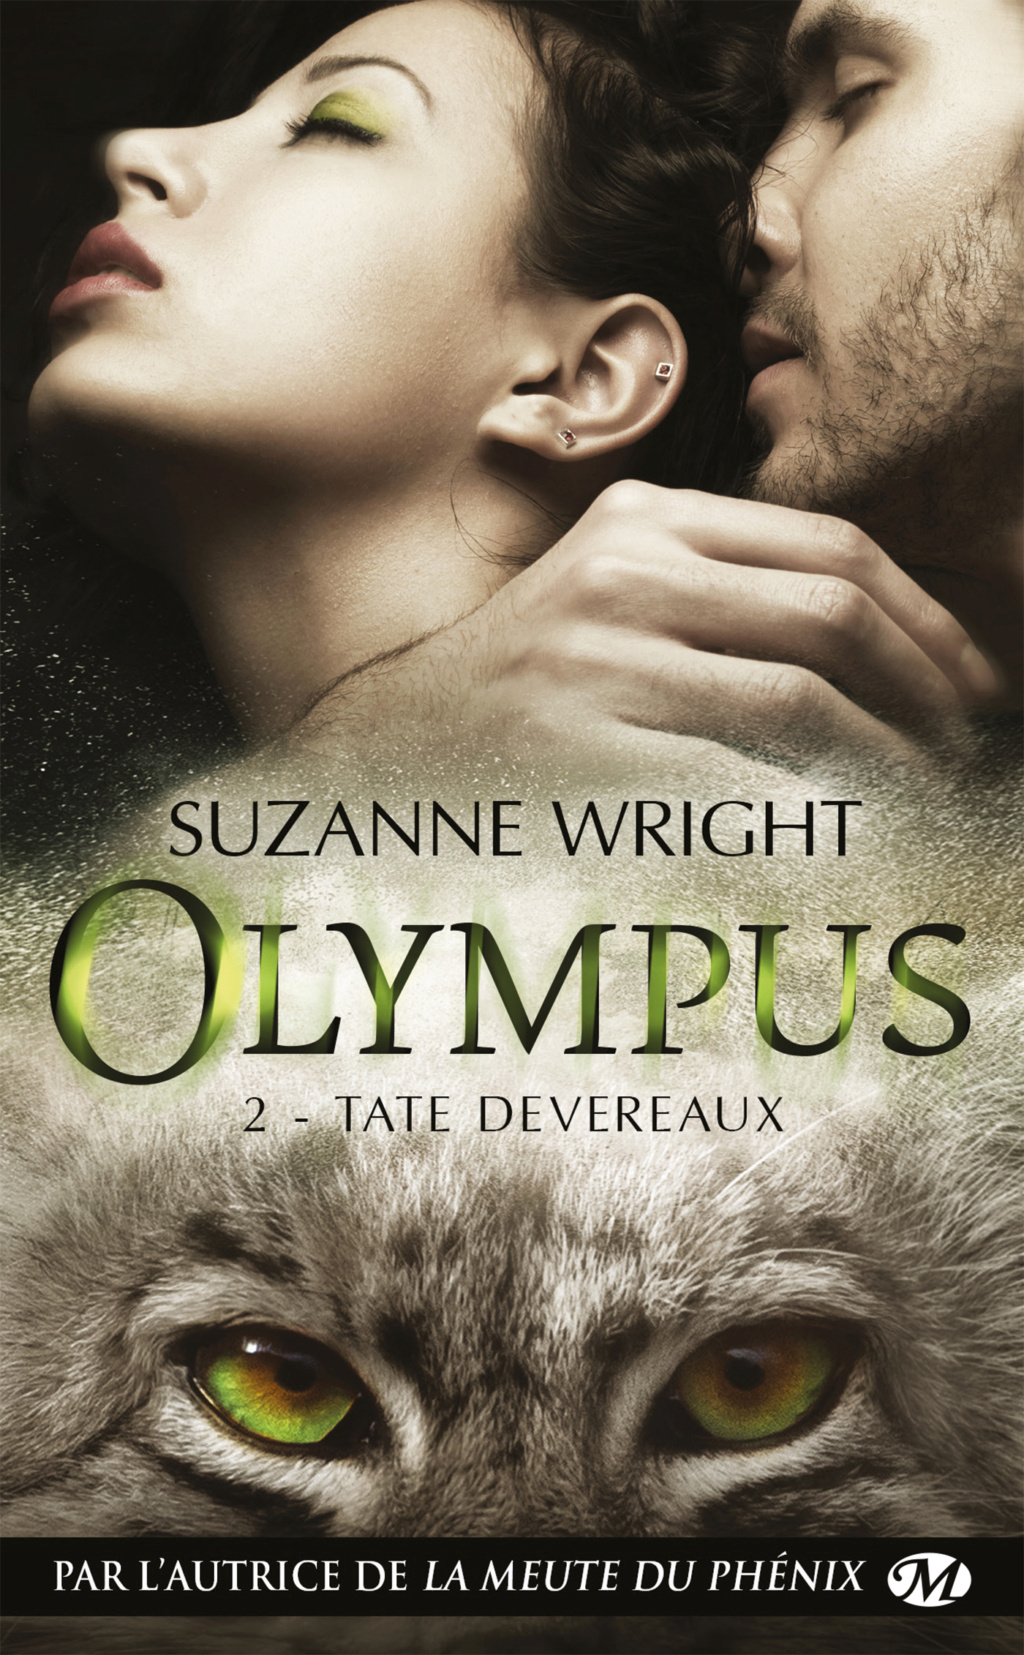 Olympus - Tome 2 : Tate Devereaux de Suzanne Wright Olympu11